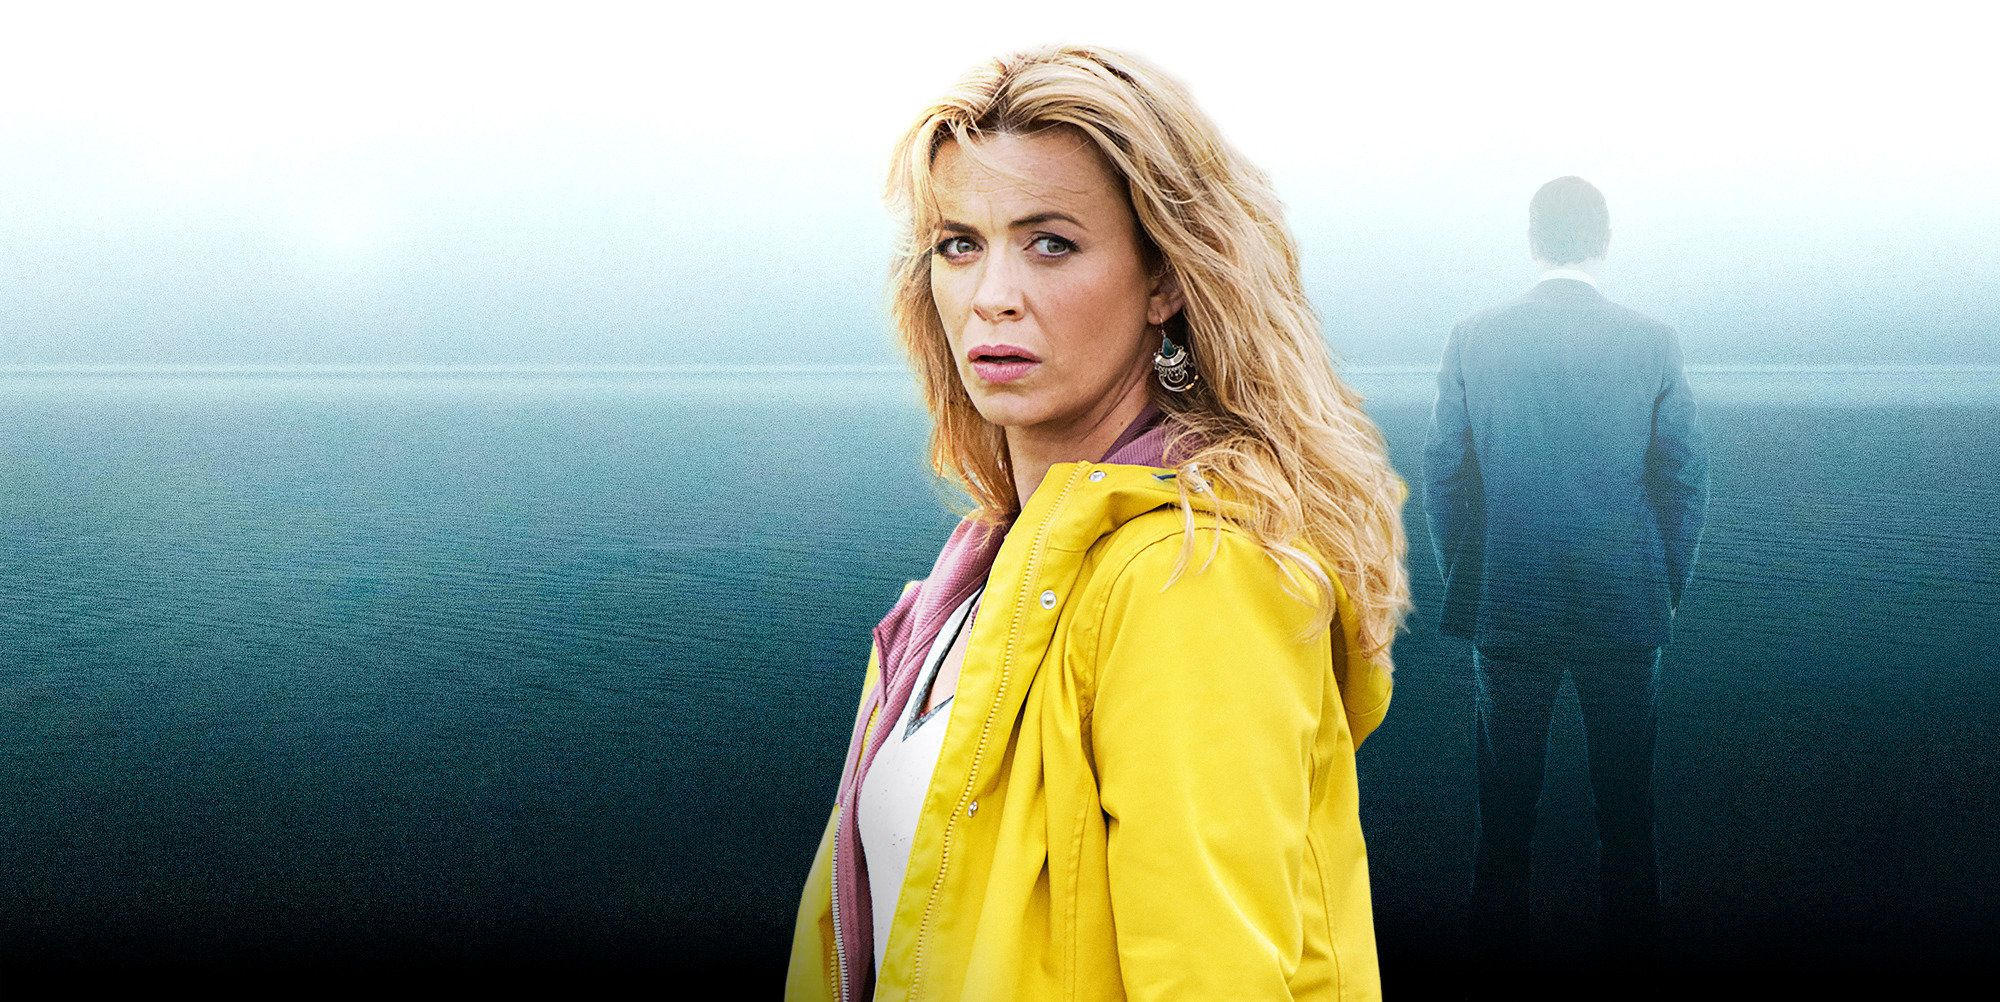 Eve Myles leads the cast of 'Keeping